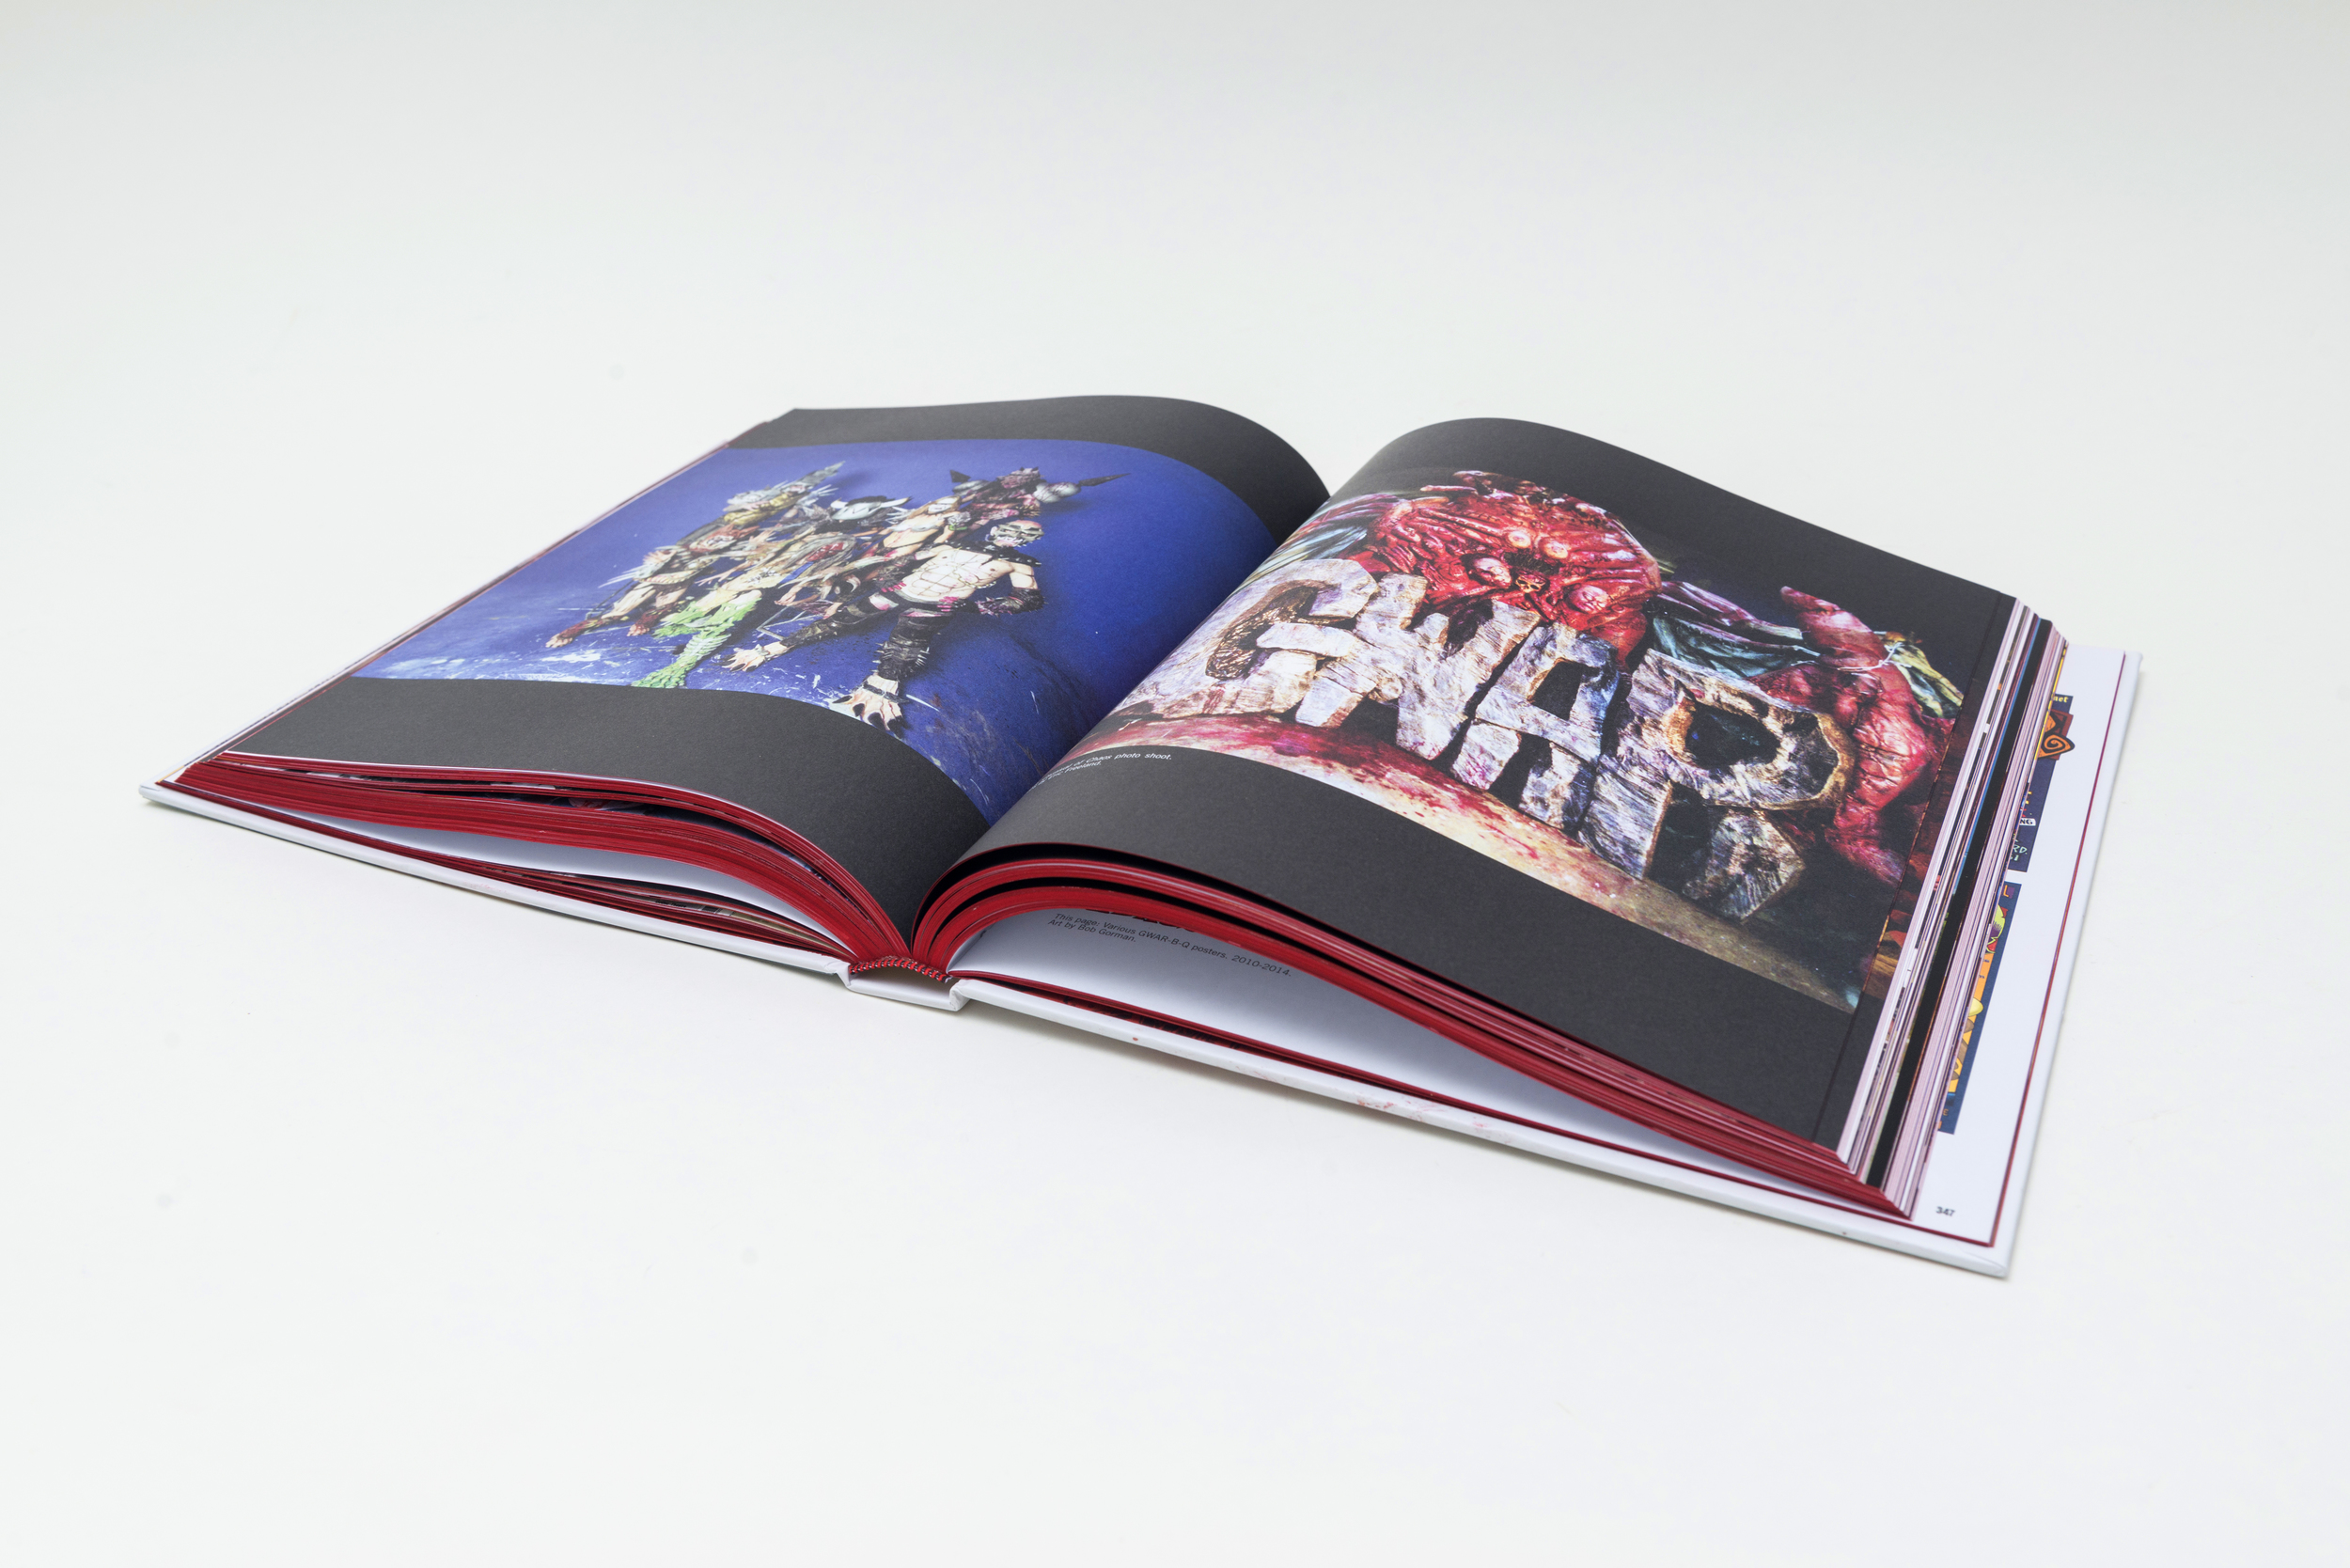 GWAR book spread